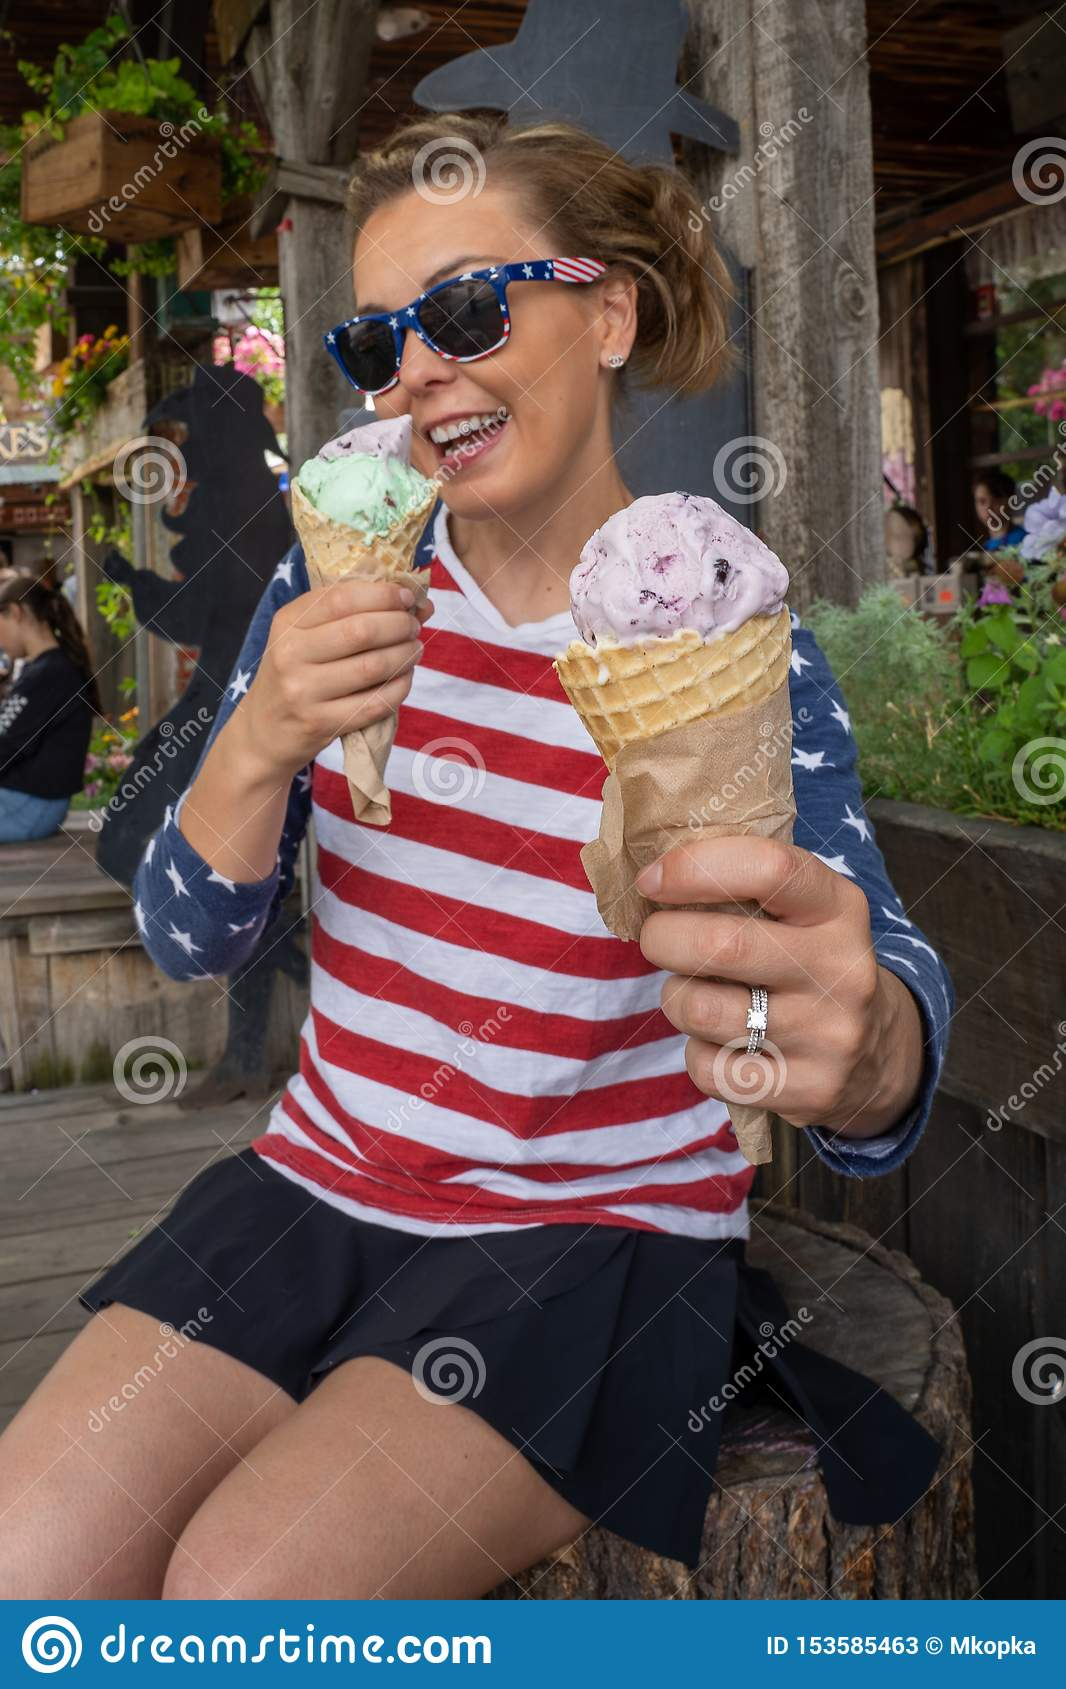 Woman eats two waffle ice cream cones, sitting down, smiling, wearing patriotic american USA clothing and sunglasses